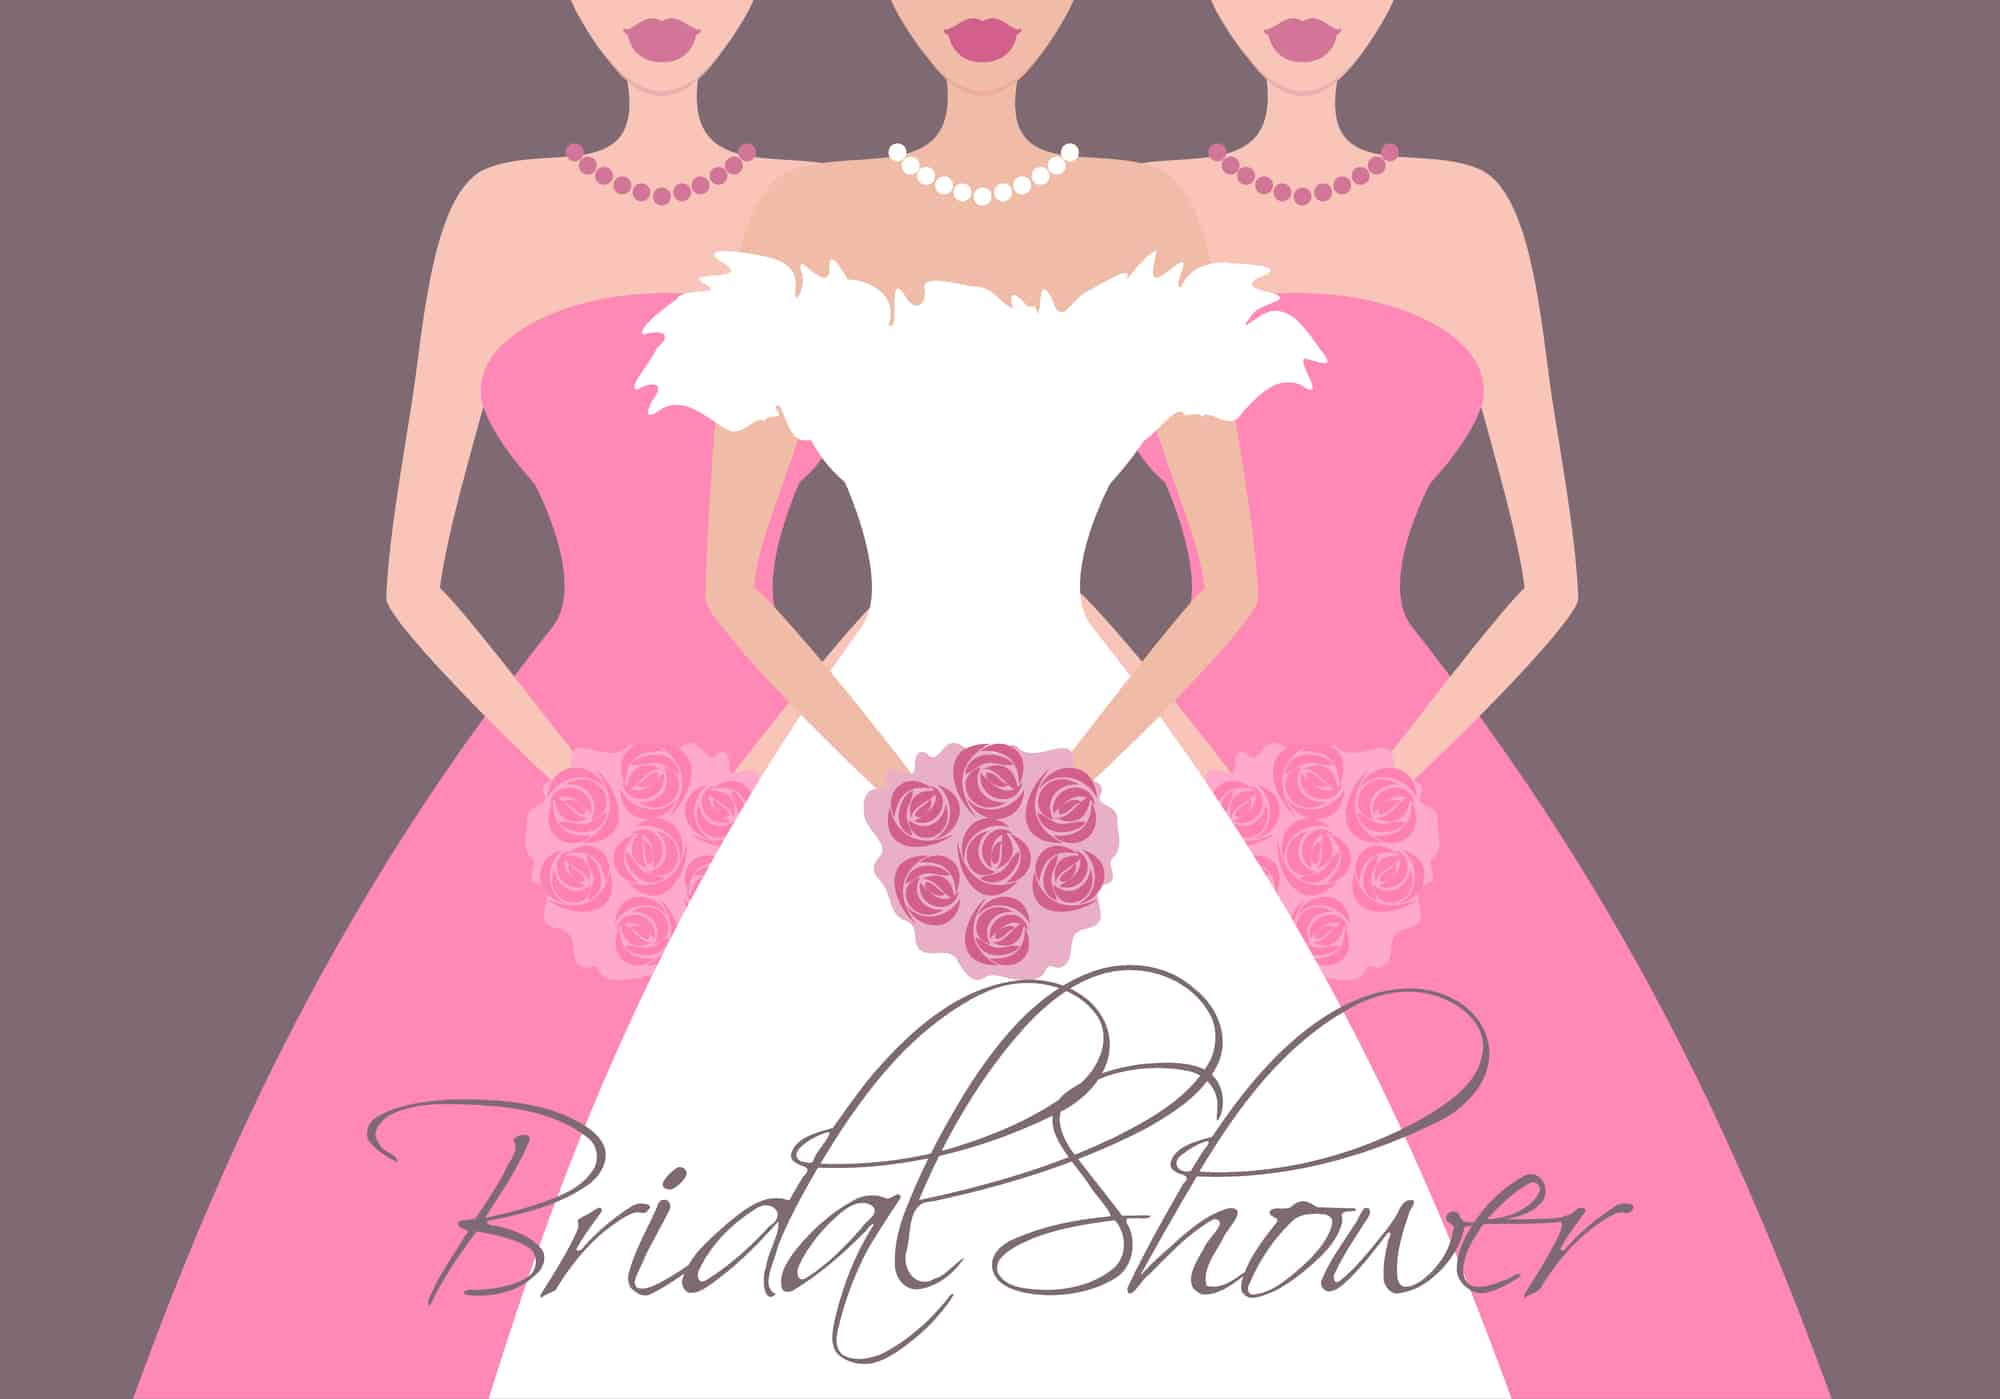 Bridal Shower: Thank You for Coming to my Bride-to-be Party